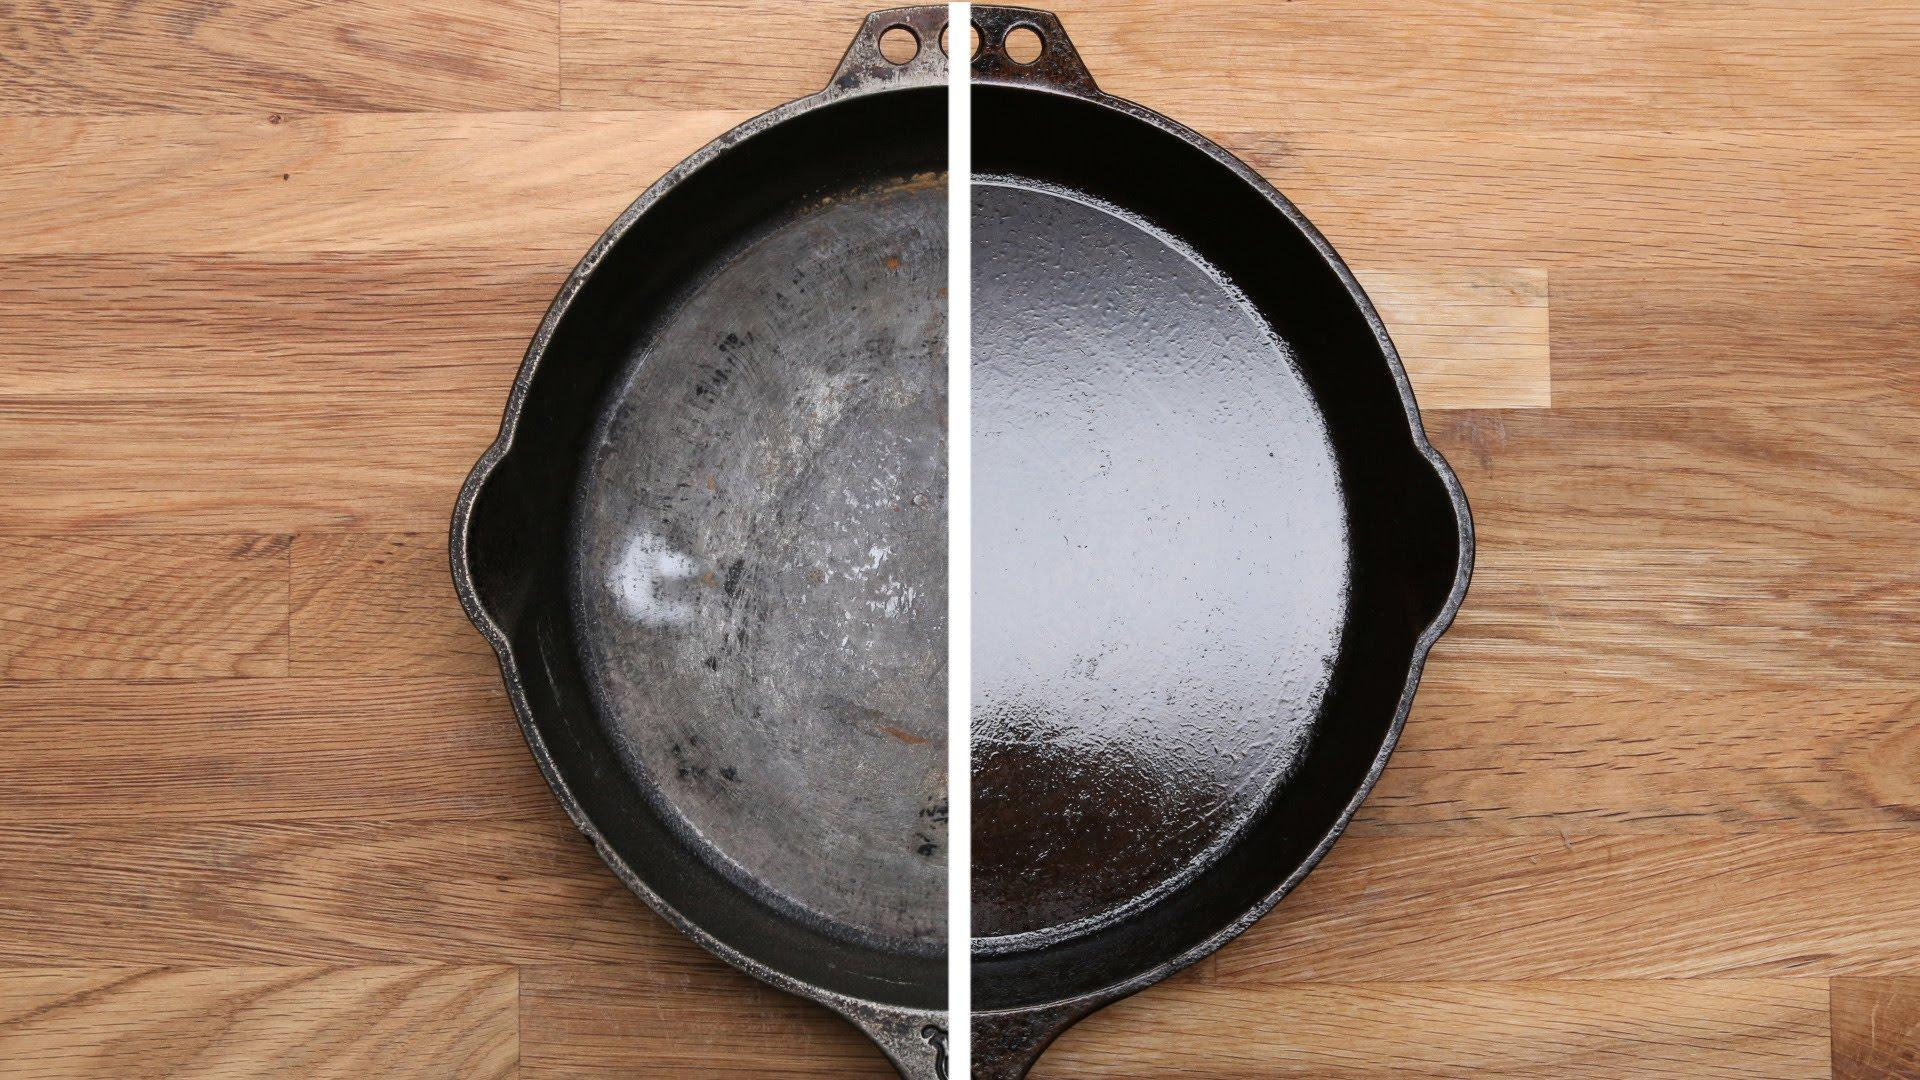 Cast Iron Care 101: A Guide to Make Sure Your Pans Last a Lifetime